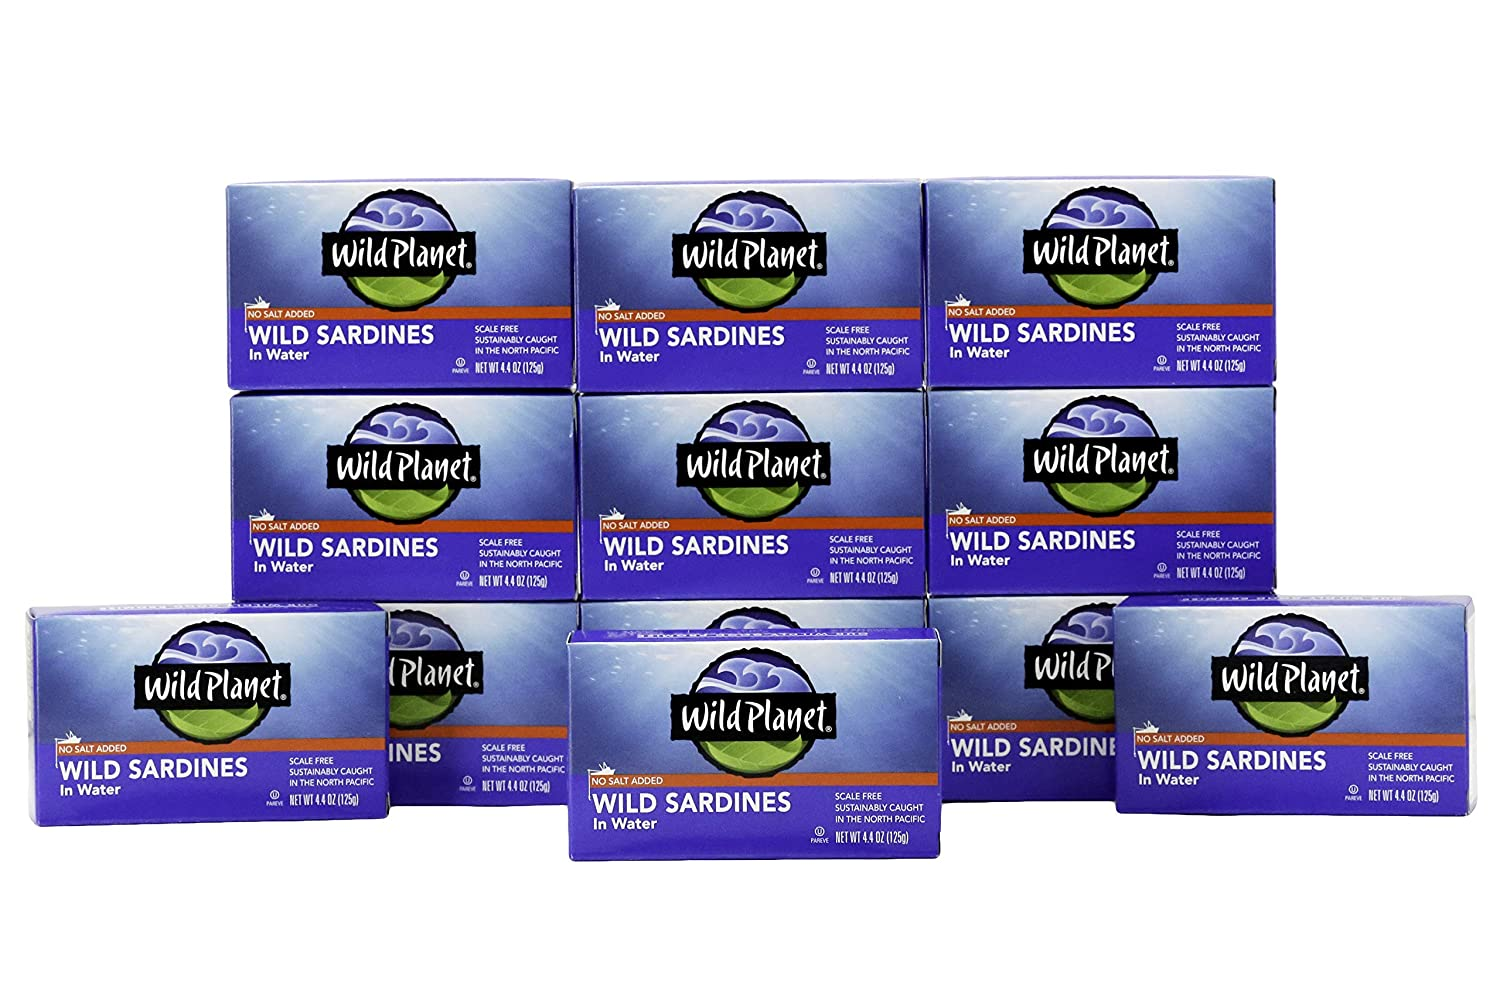 Wild Planet Sardines in Water, No Salt Added, Keto and Paleo, 4.4 Ounce (Pack of 12)